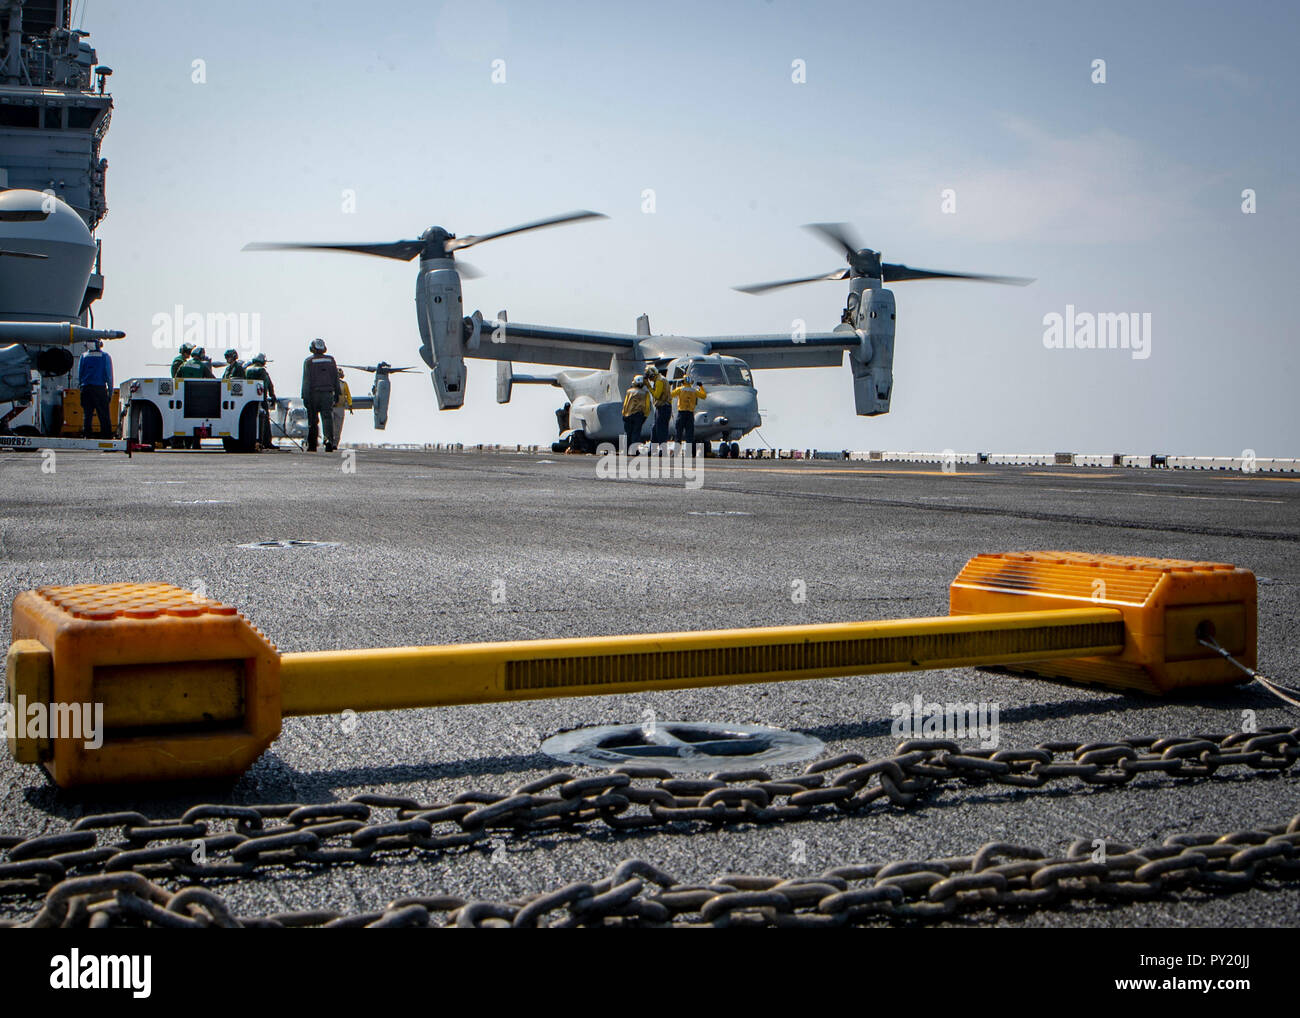 Launch Of Email Stock Photos Images Alamy Osprey Engine Diagram 181021 N At135 1060 Arabian Sea Oct 21 2018